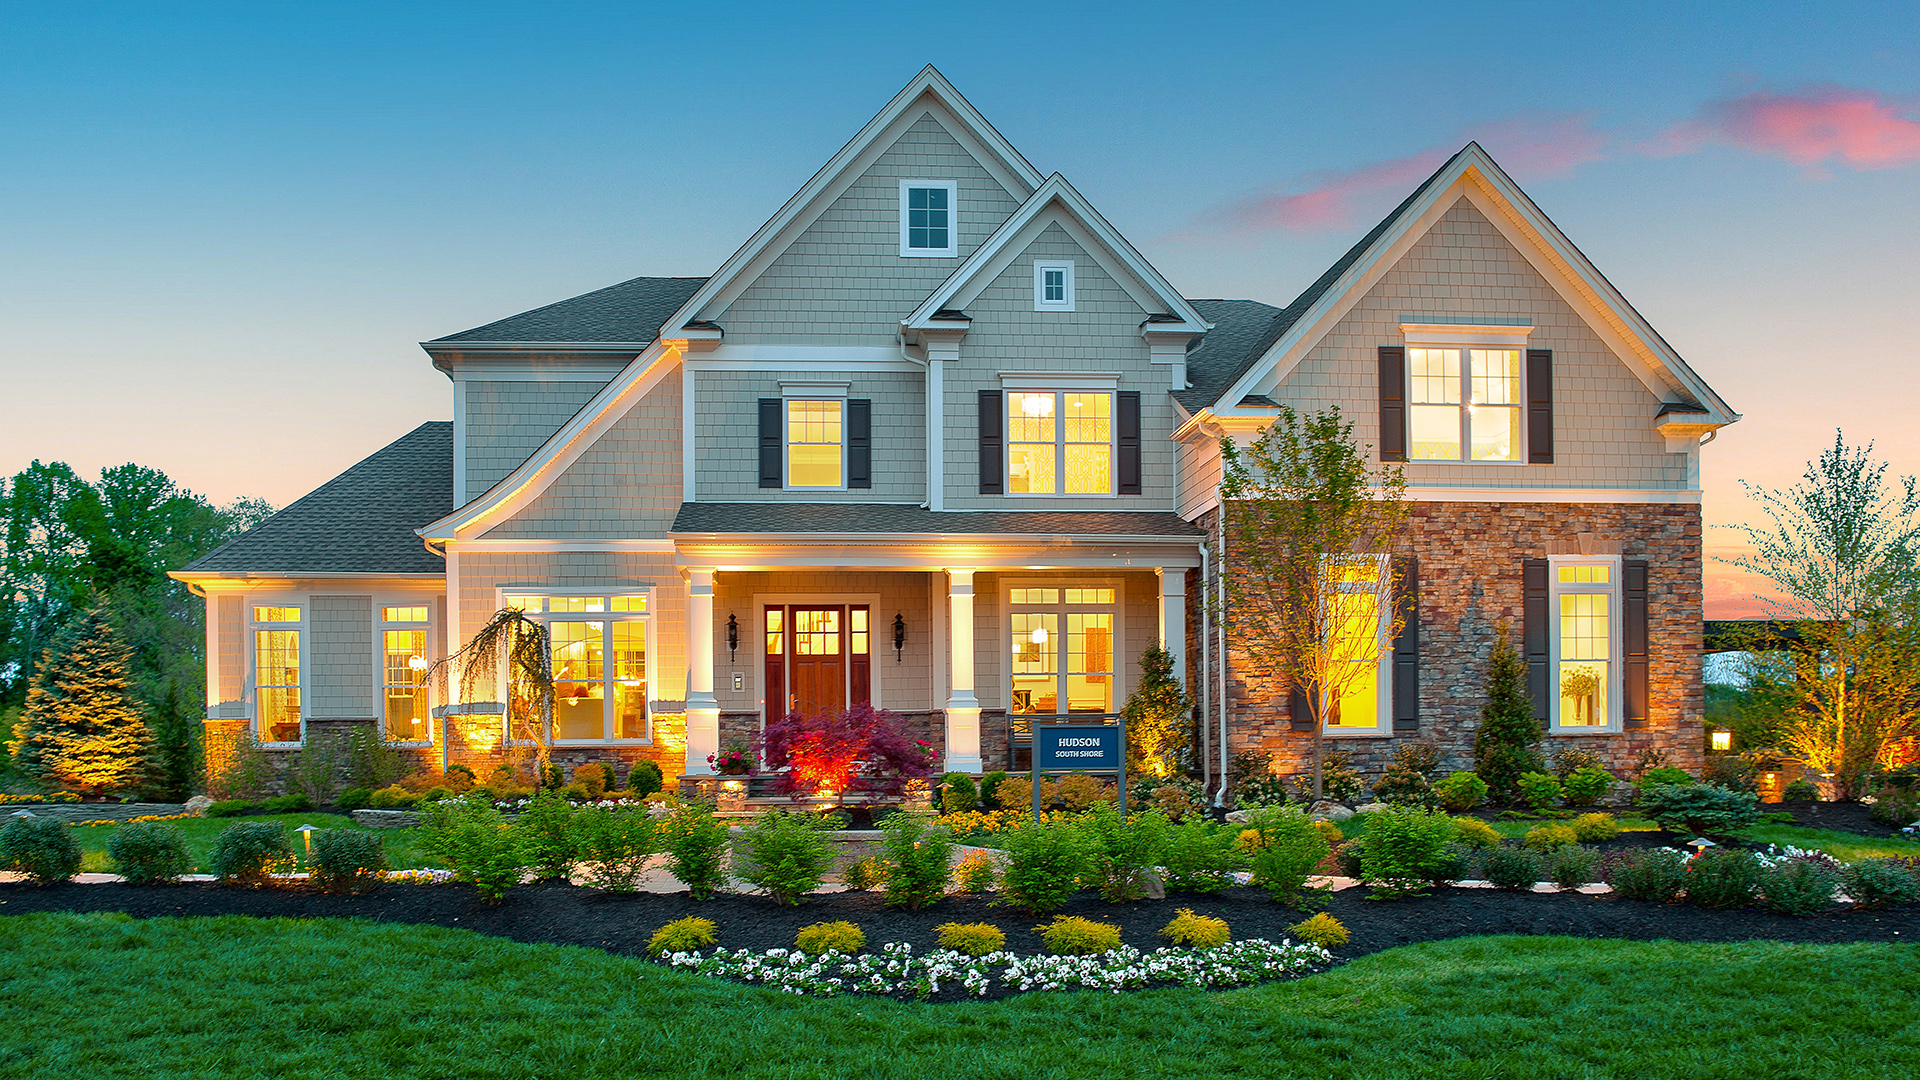 New luxury homes for sale in lincroft nj estates at for New home builders in new jersey